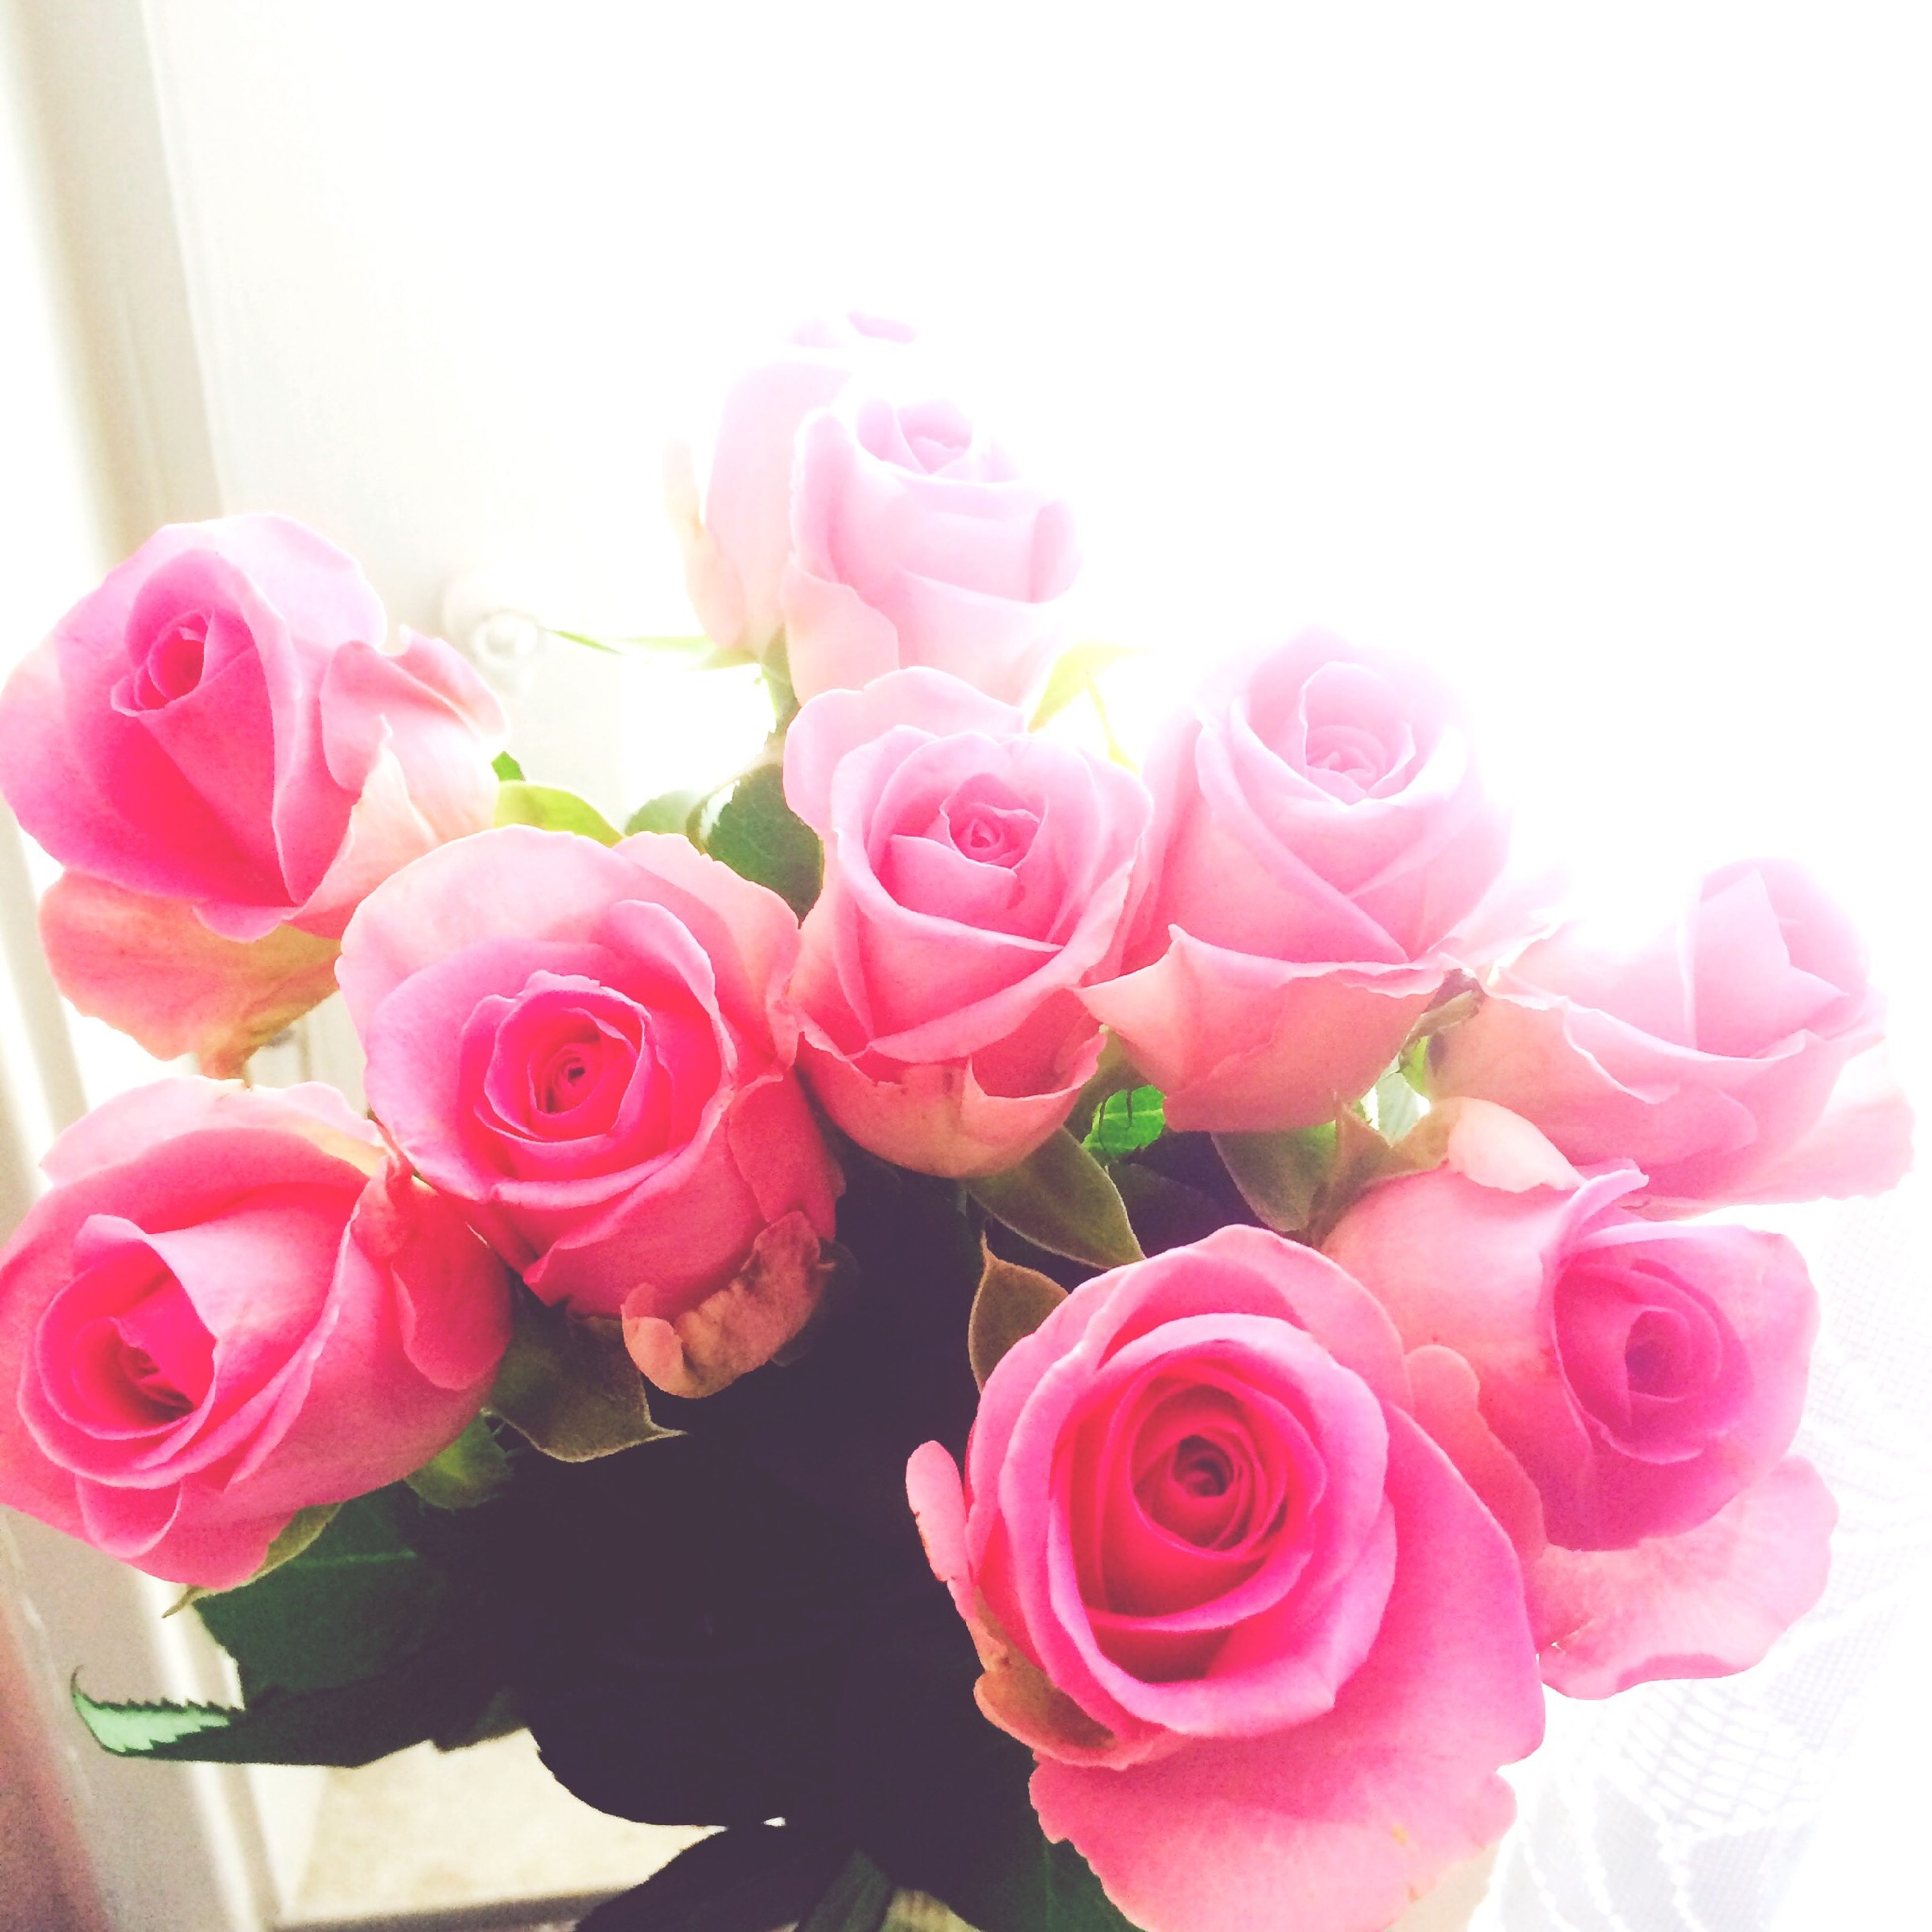 flower, rose - flower, petal, freshness, fragility, indoors, pink color, flower head, beauty in nature, vase, rose, close-up, bouquet, nature, flower arrangement, bunch of flowers, blooming, home interior, growth, pink